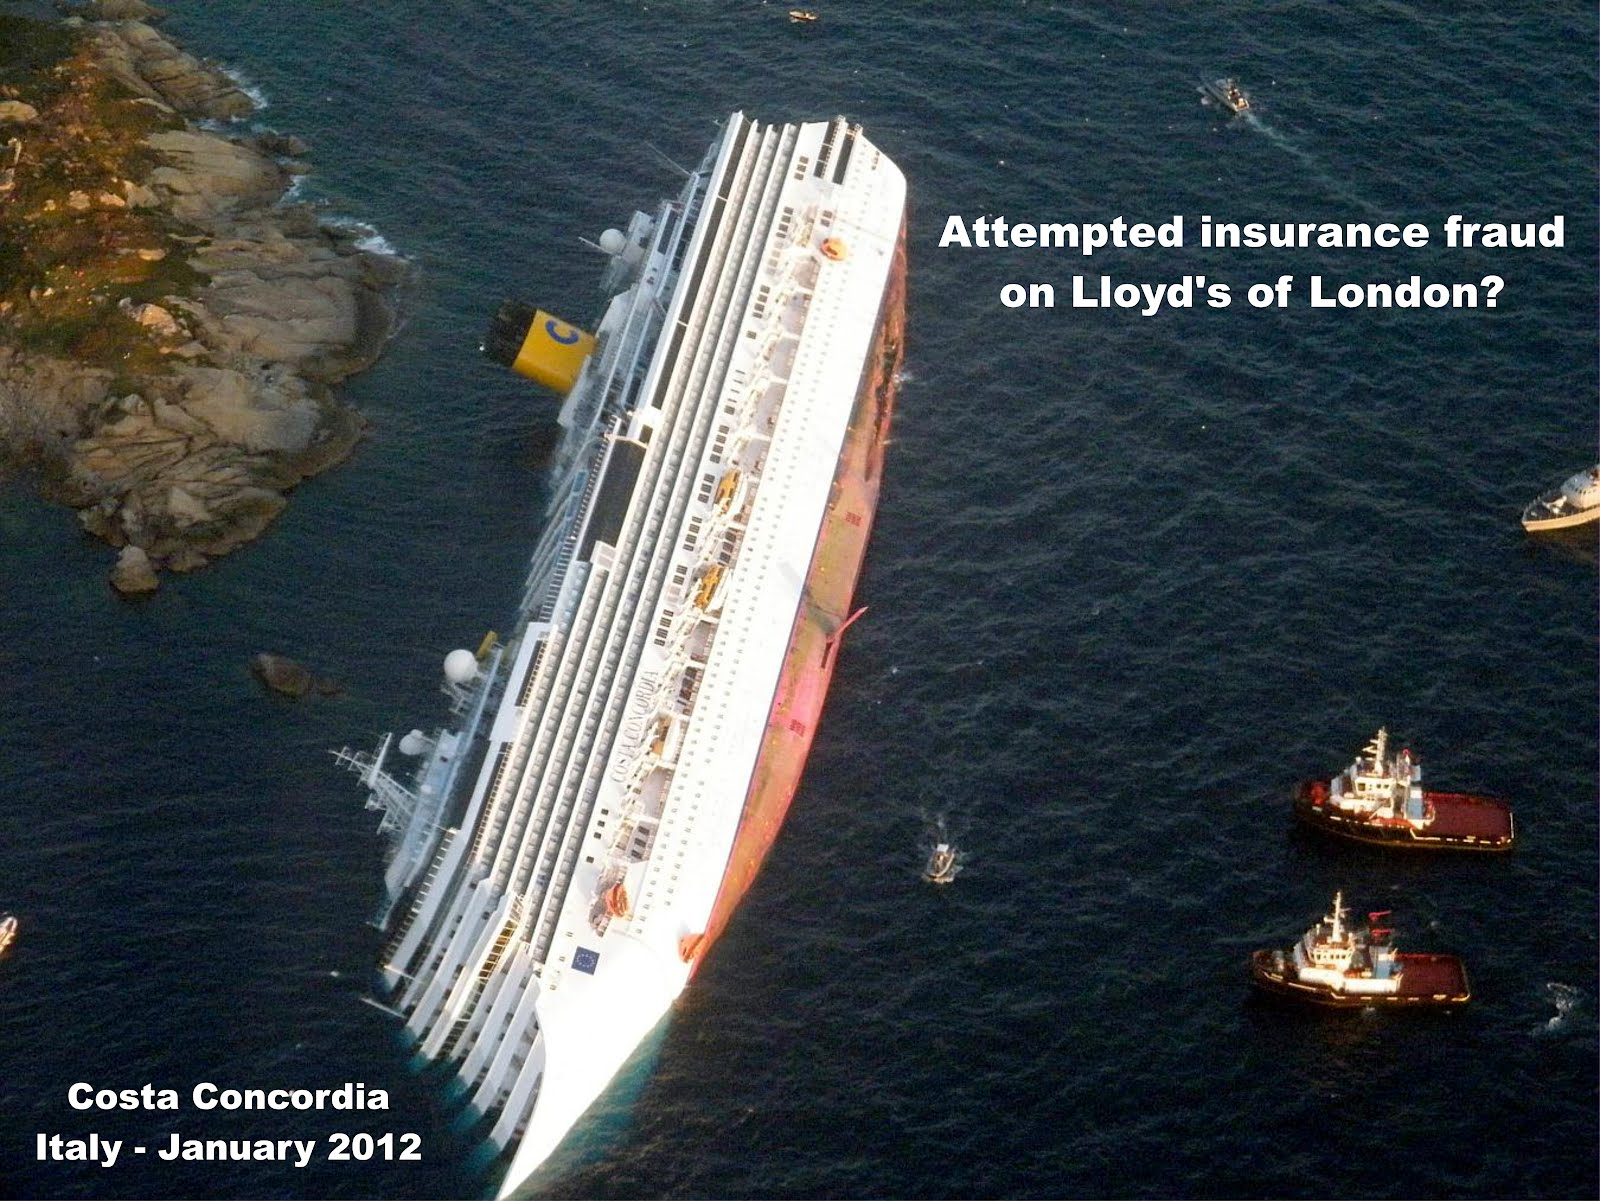 Murdoch order the destruction of the Costa Concordia out of spite